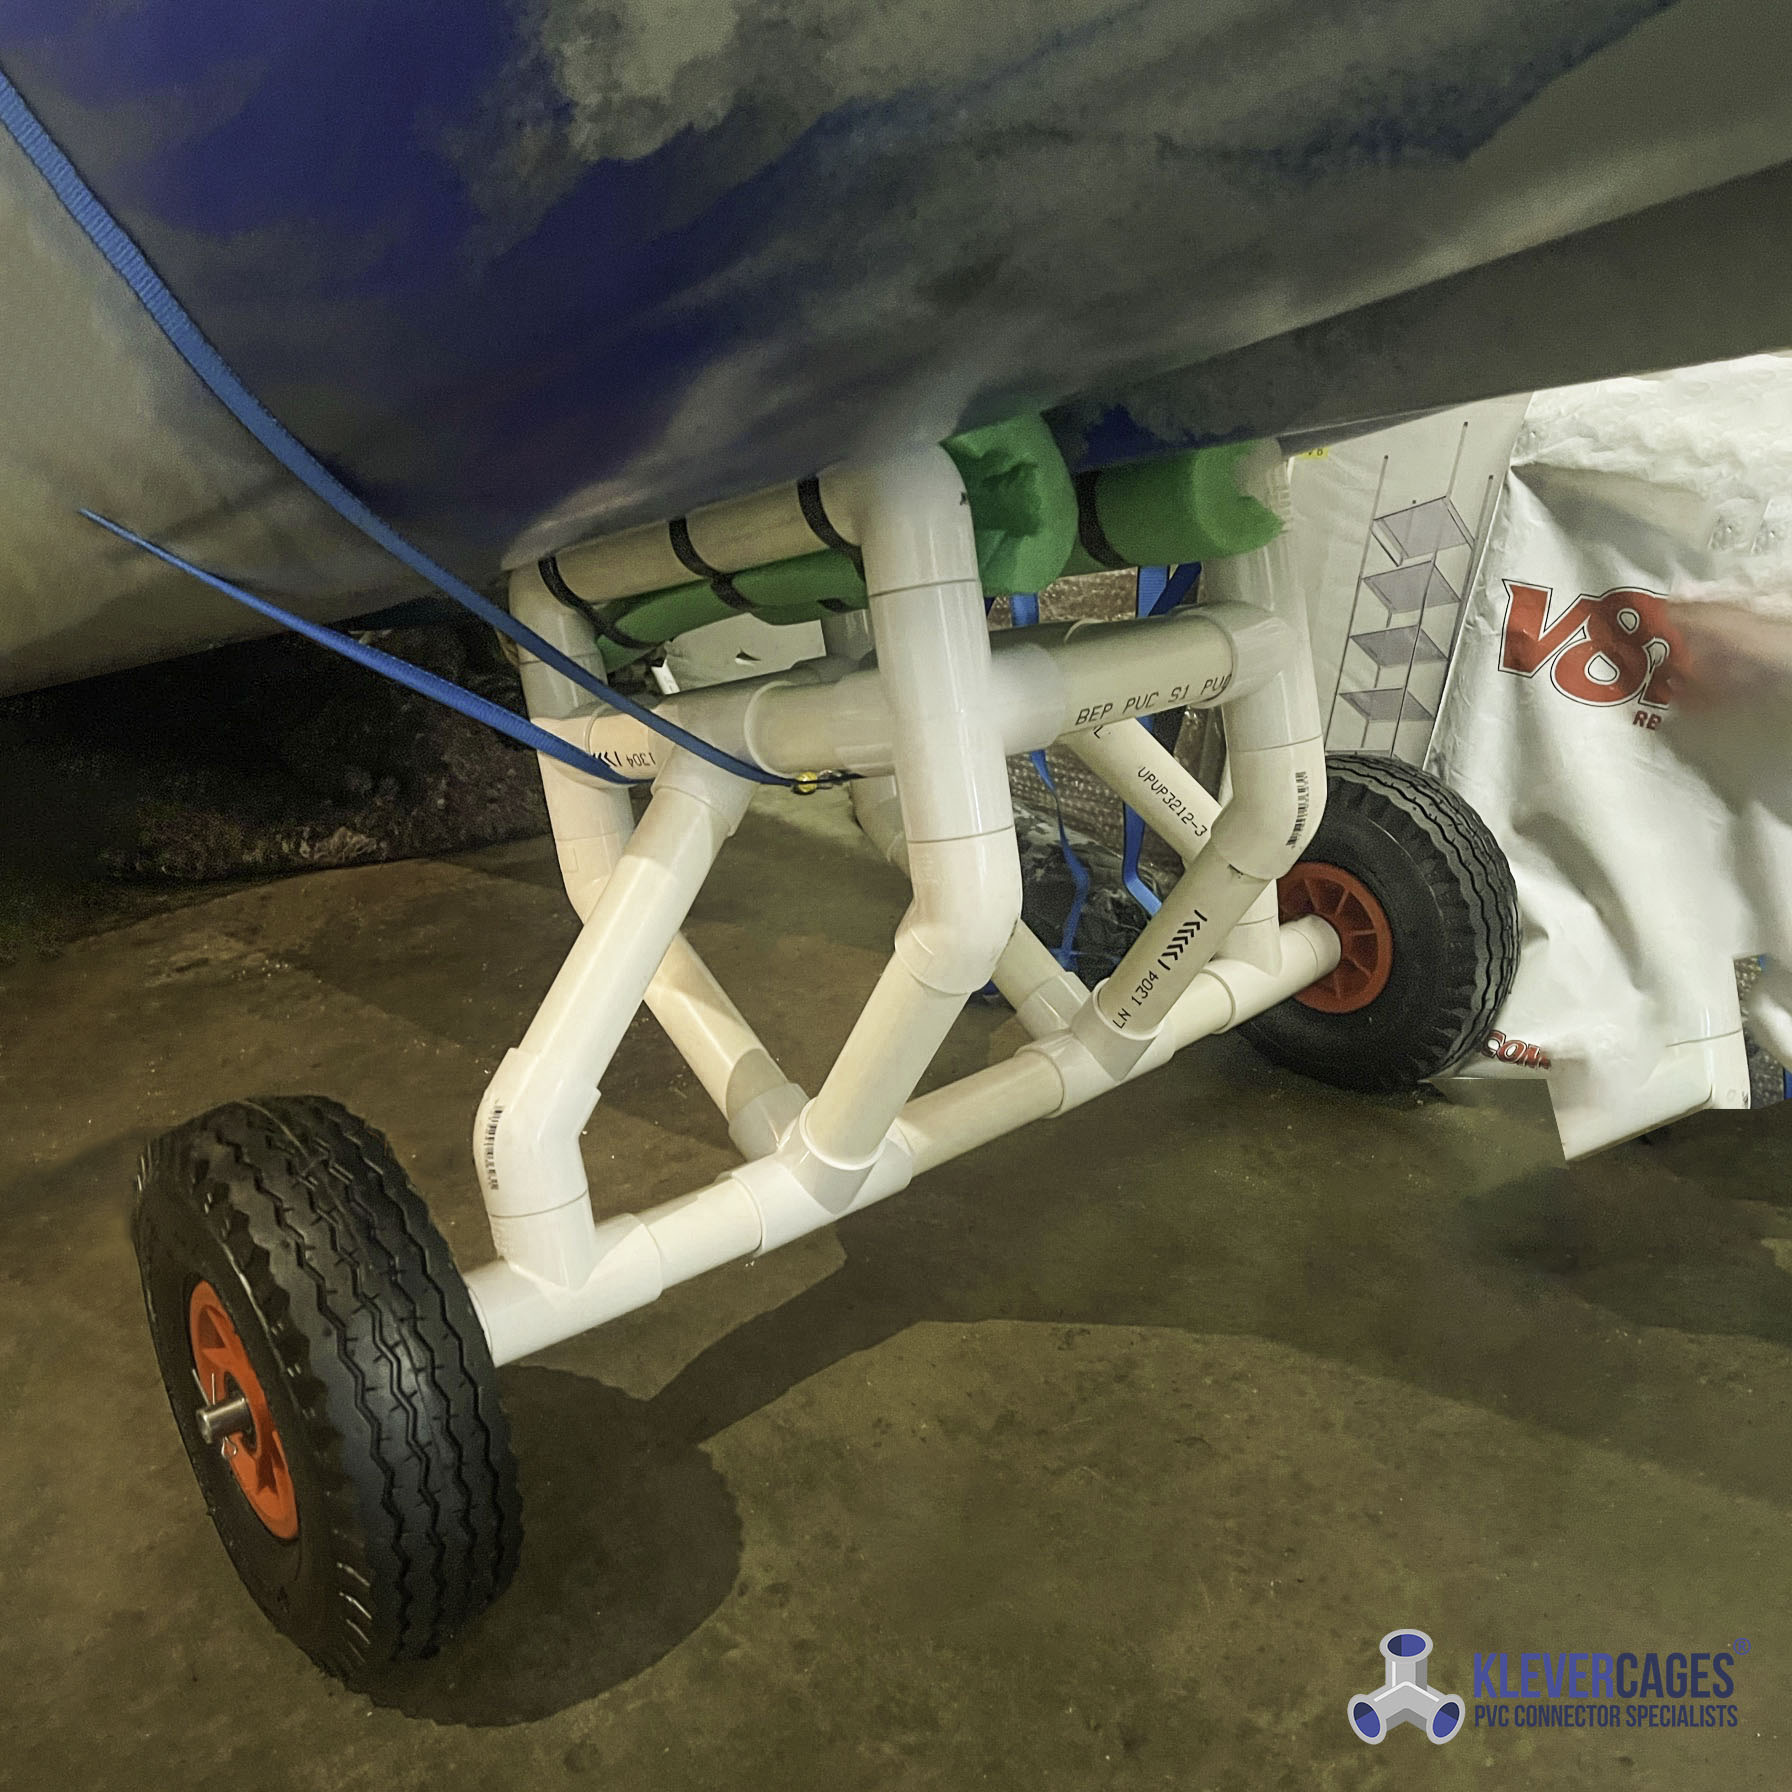 DIY Kayak trolley built with PVC pipe and connectors from Klever Cages